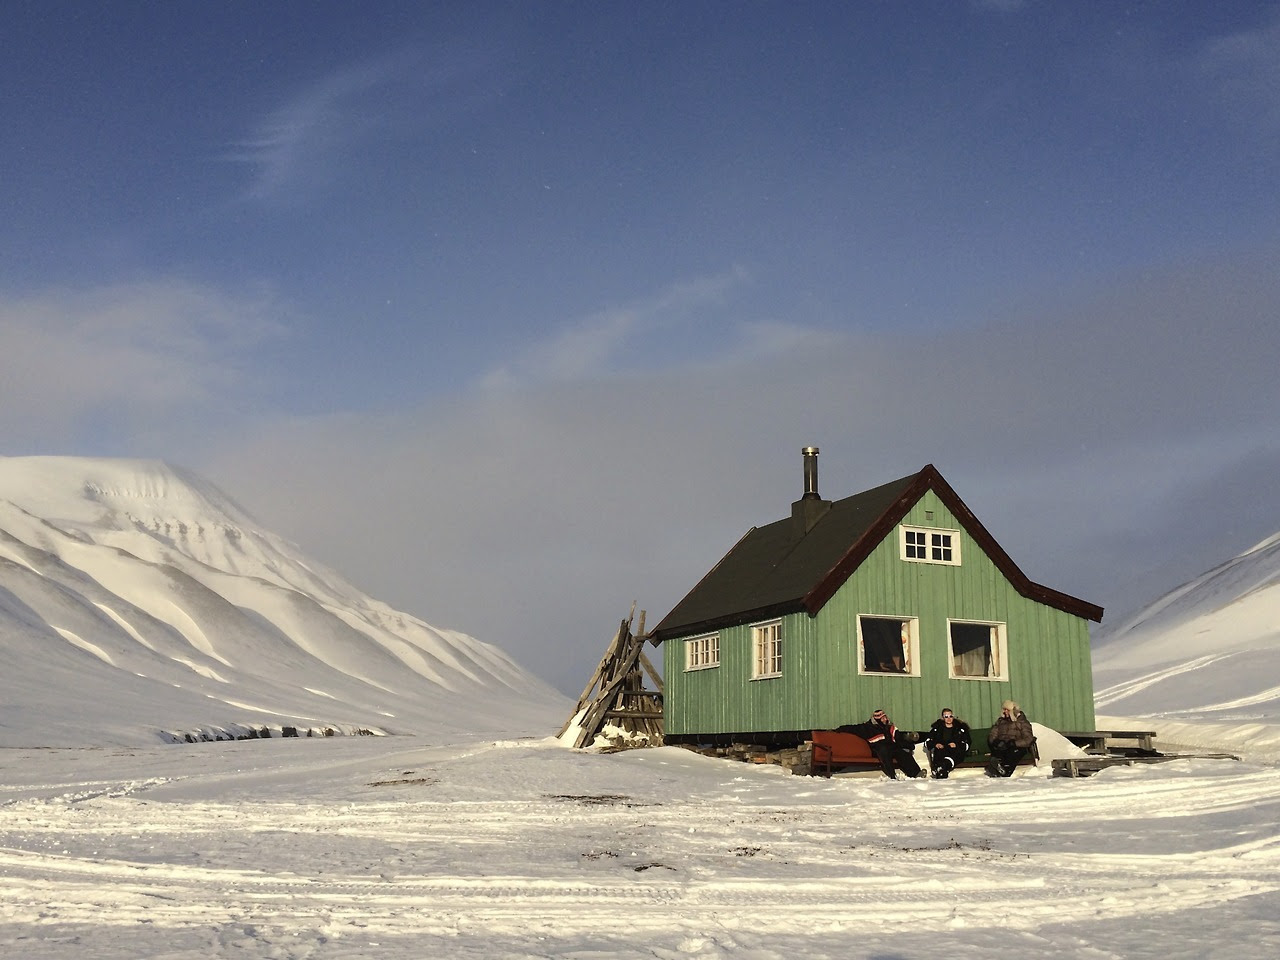 """Submitted by James Rankin / @JamesRanken """"Took a trip up to a friend's cabin in Svalbard. We spent the week cut off from the world looking out for polar bears, backcountry snowboarding and riding snowmobiles. """""""